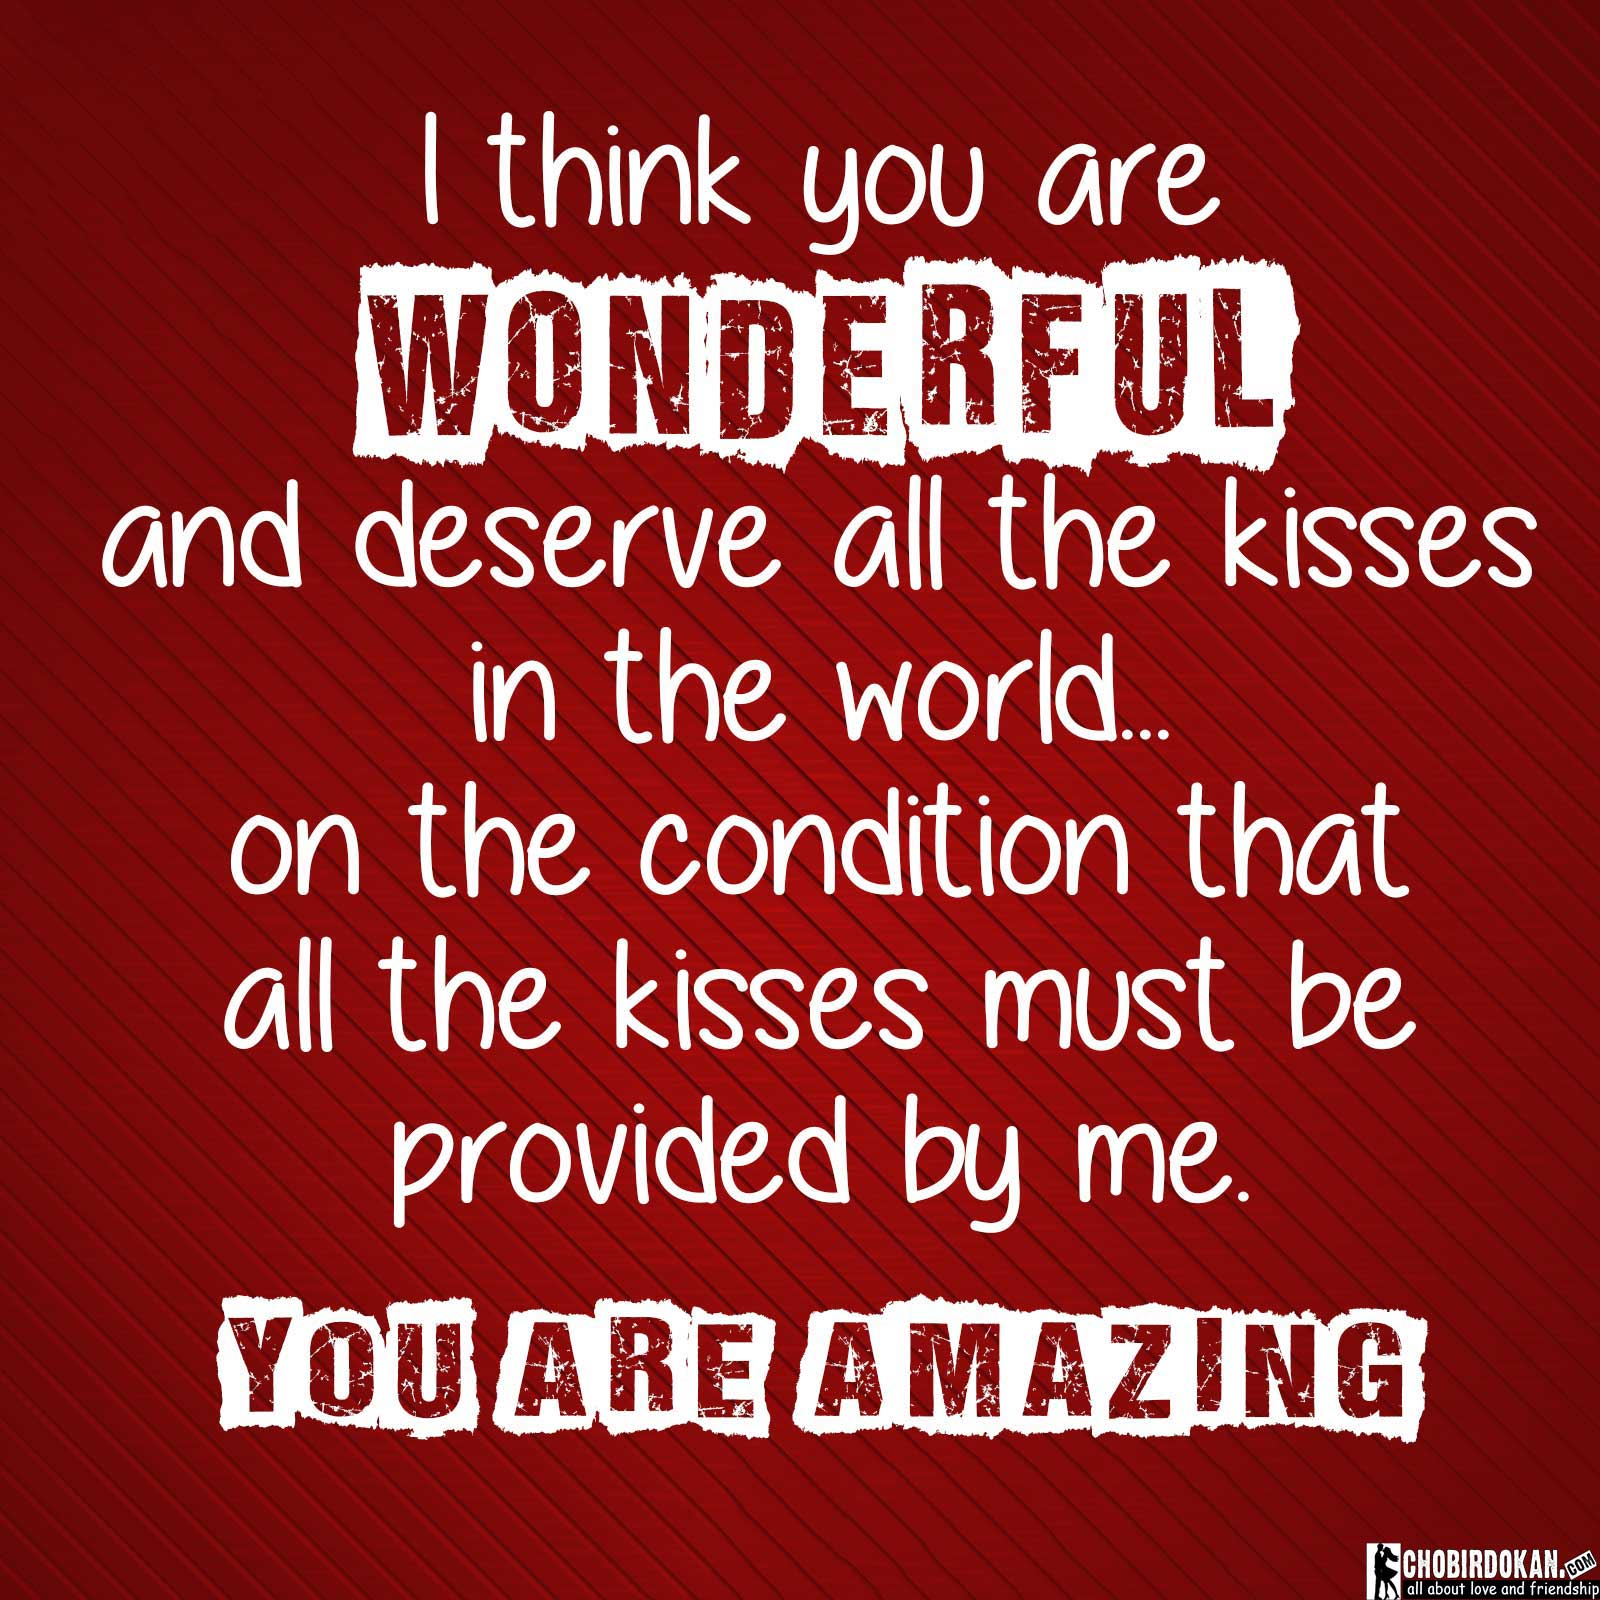 you are amazing quotes for him and her with images chobir dokan